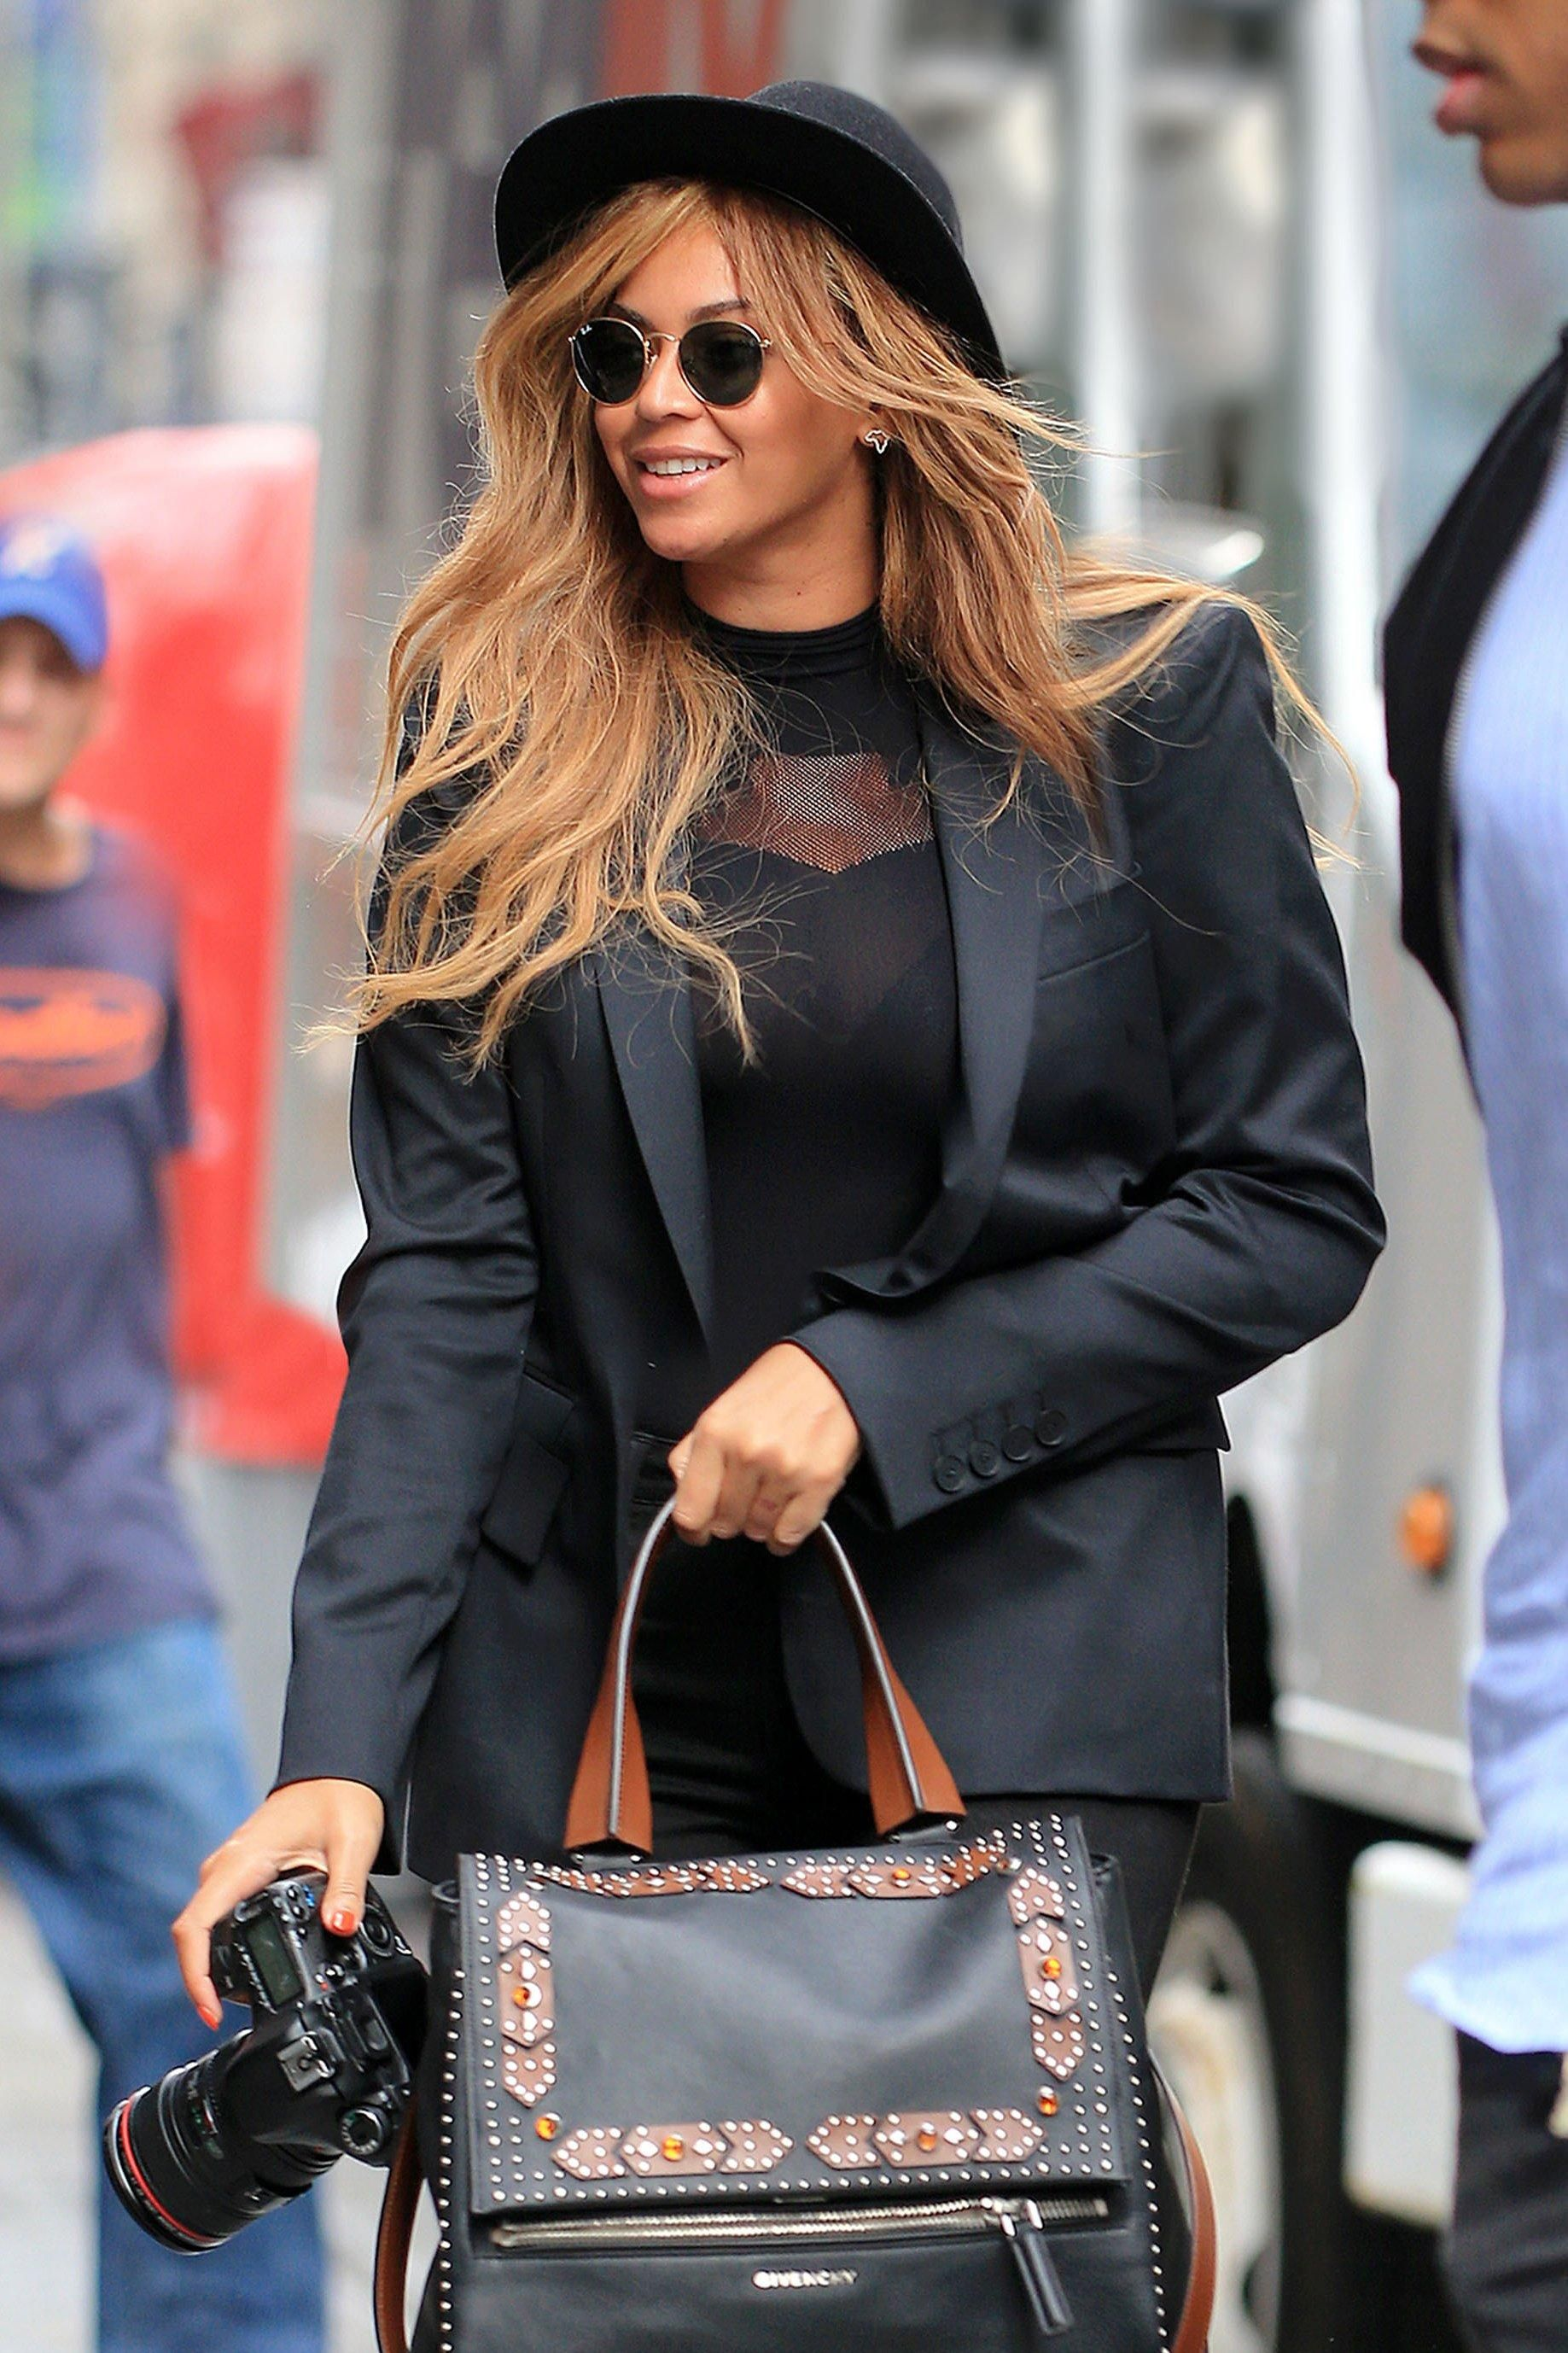 d6b11607e4783c Beyoncé topped our 10 best beauty looks of the week. See why on Vogue.com.